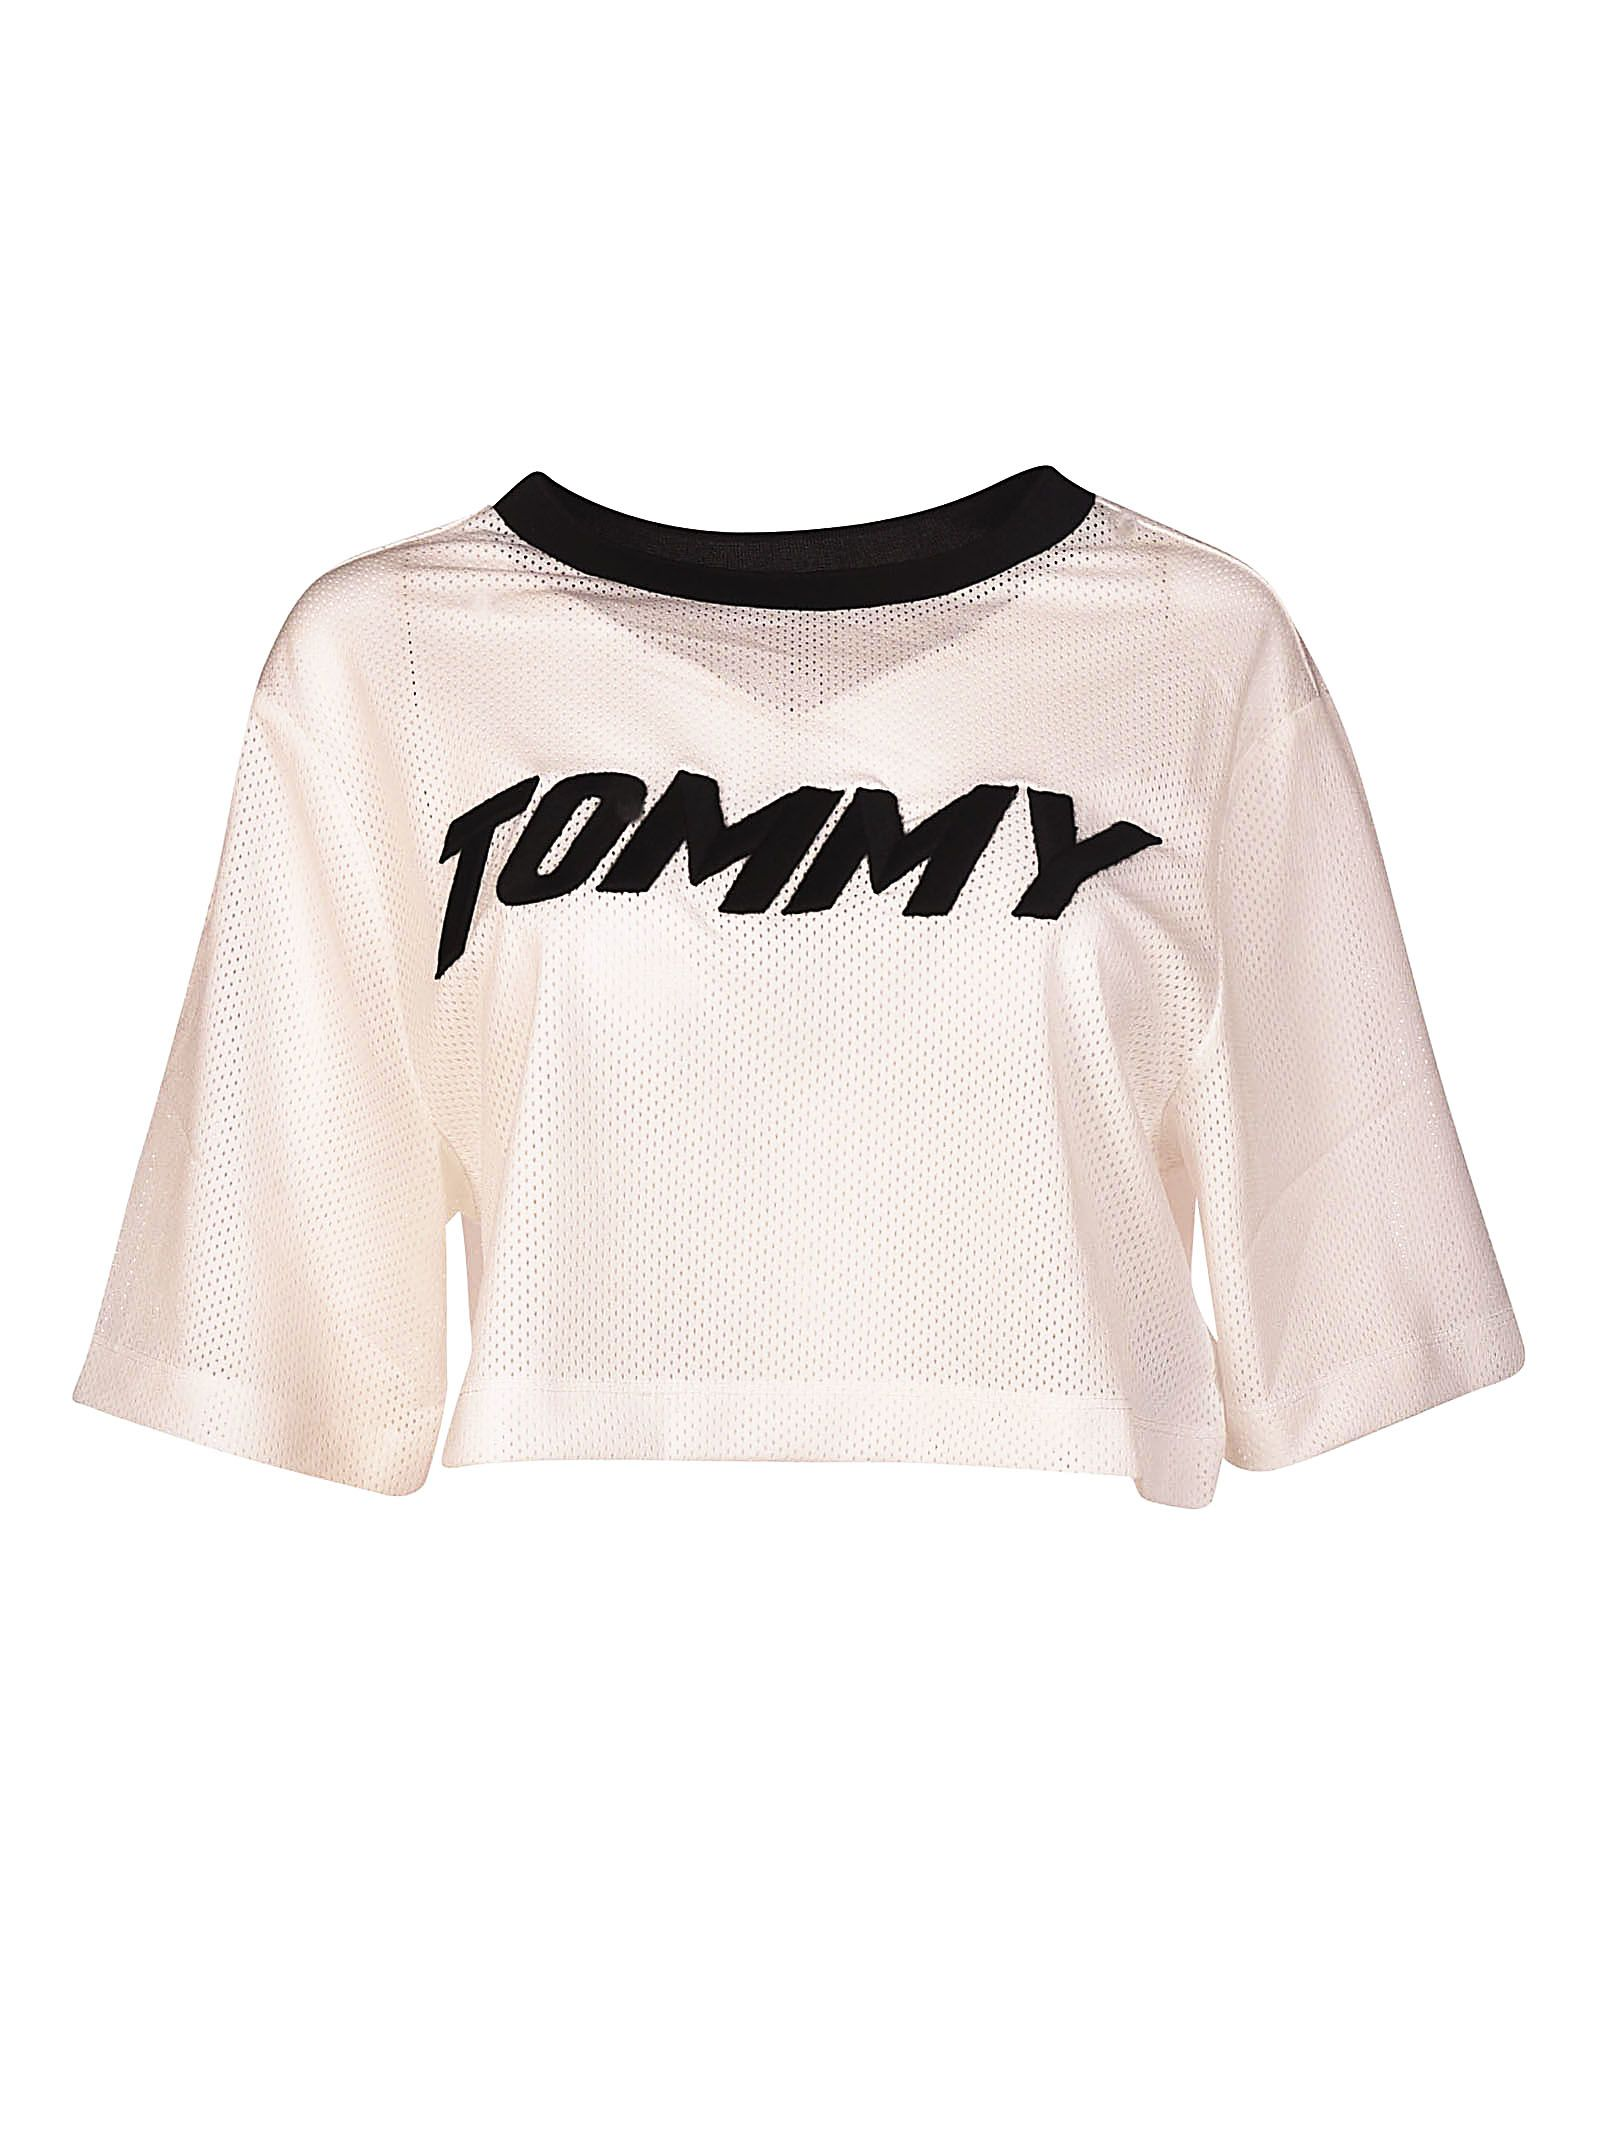 TommyXGiGi Racing T-shirt